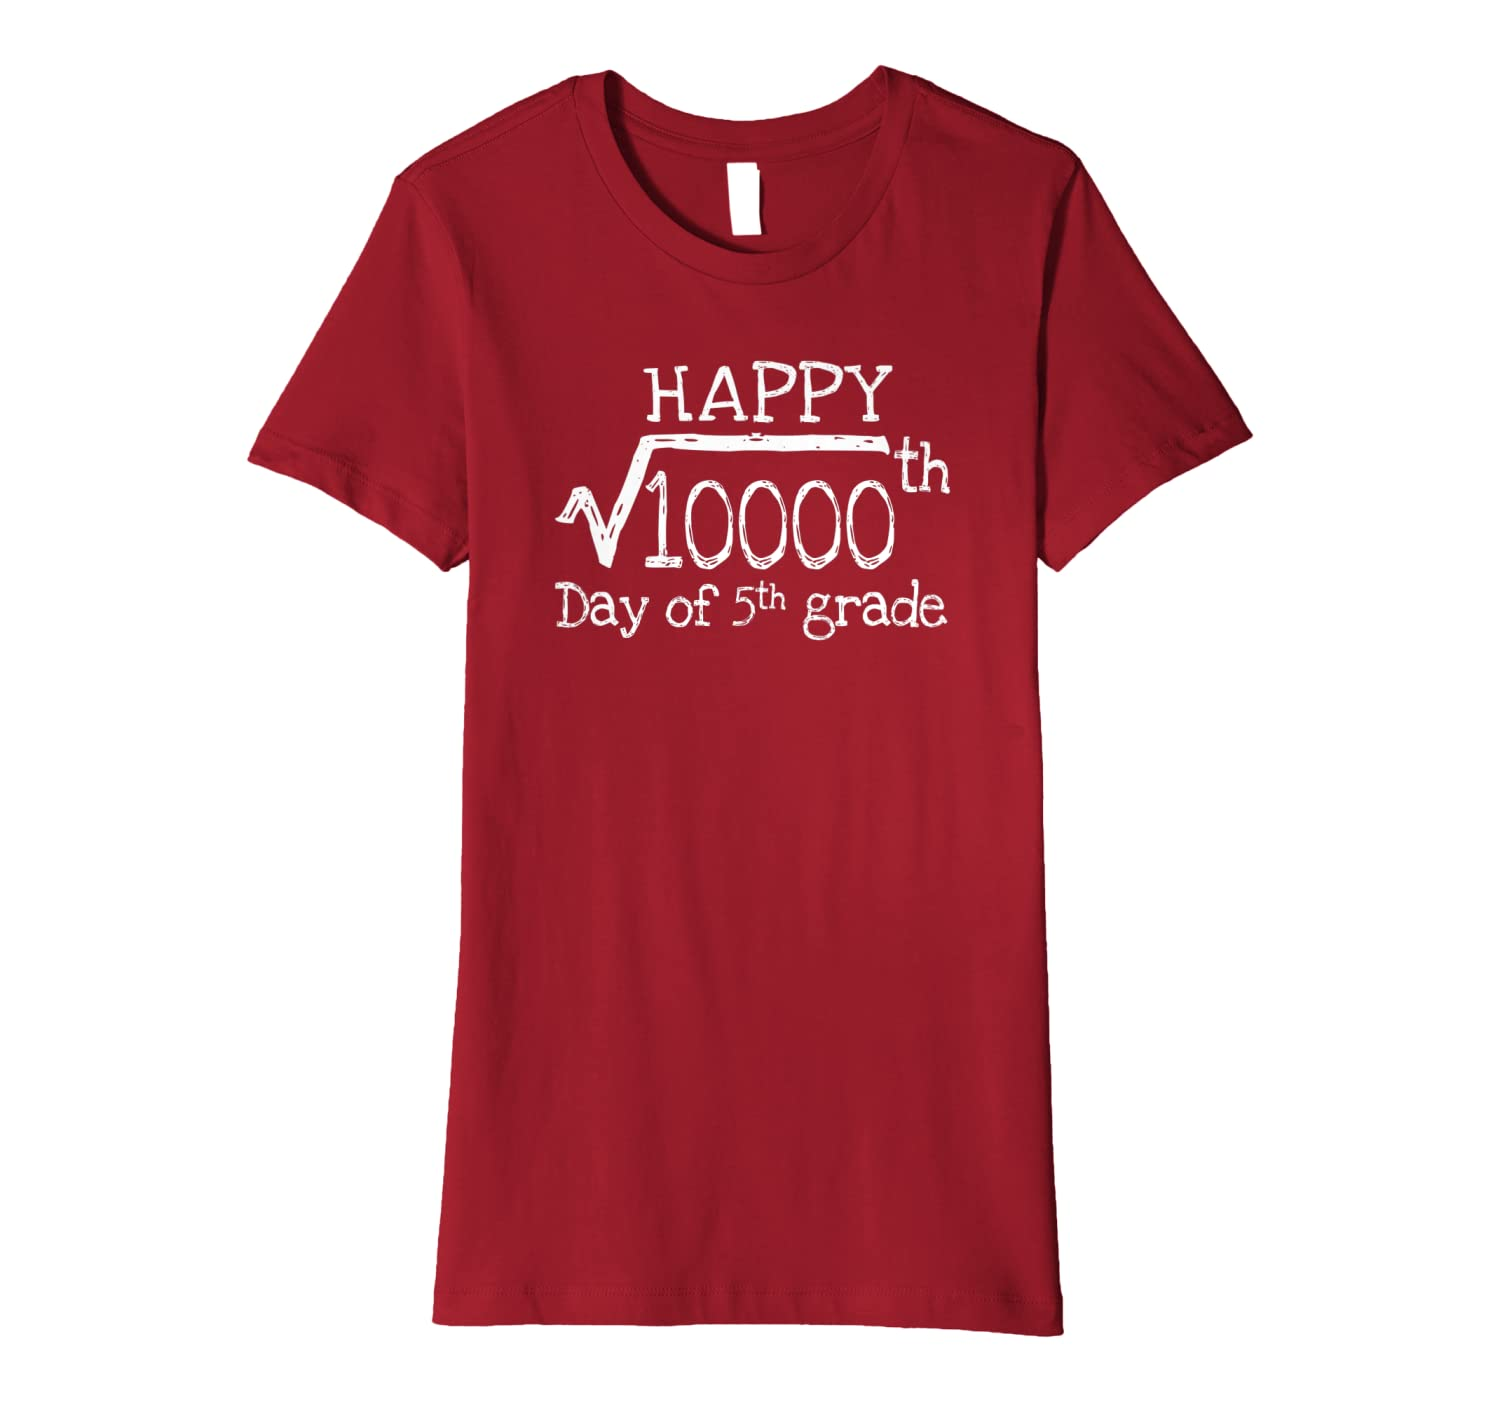 100th Day Of 5th grade Square Root of 10000 Math Teachers Premium T-Shirt